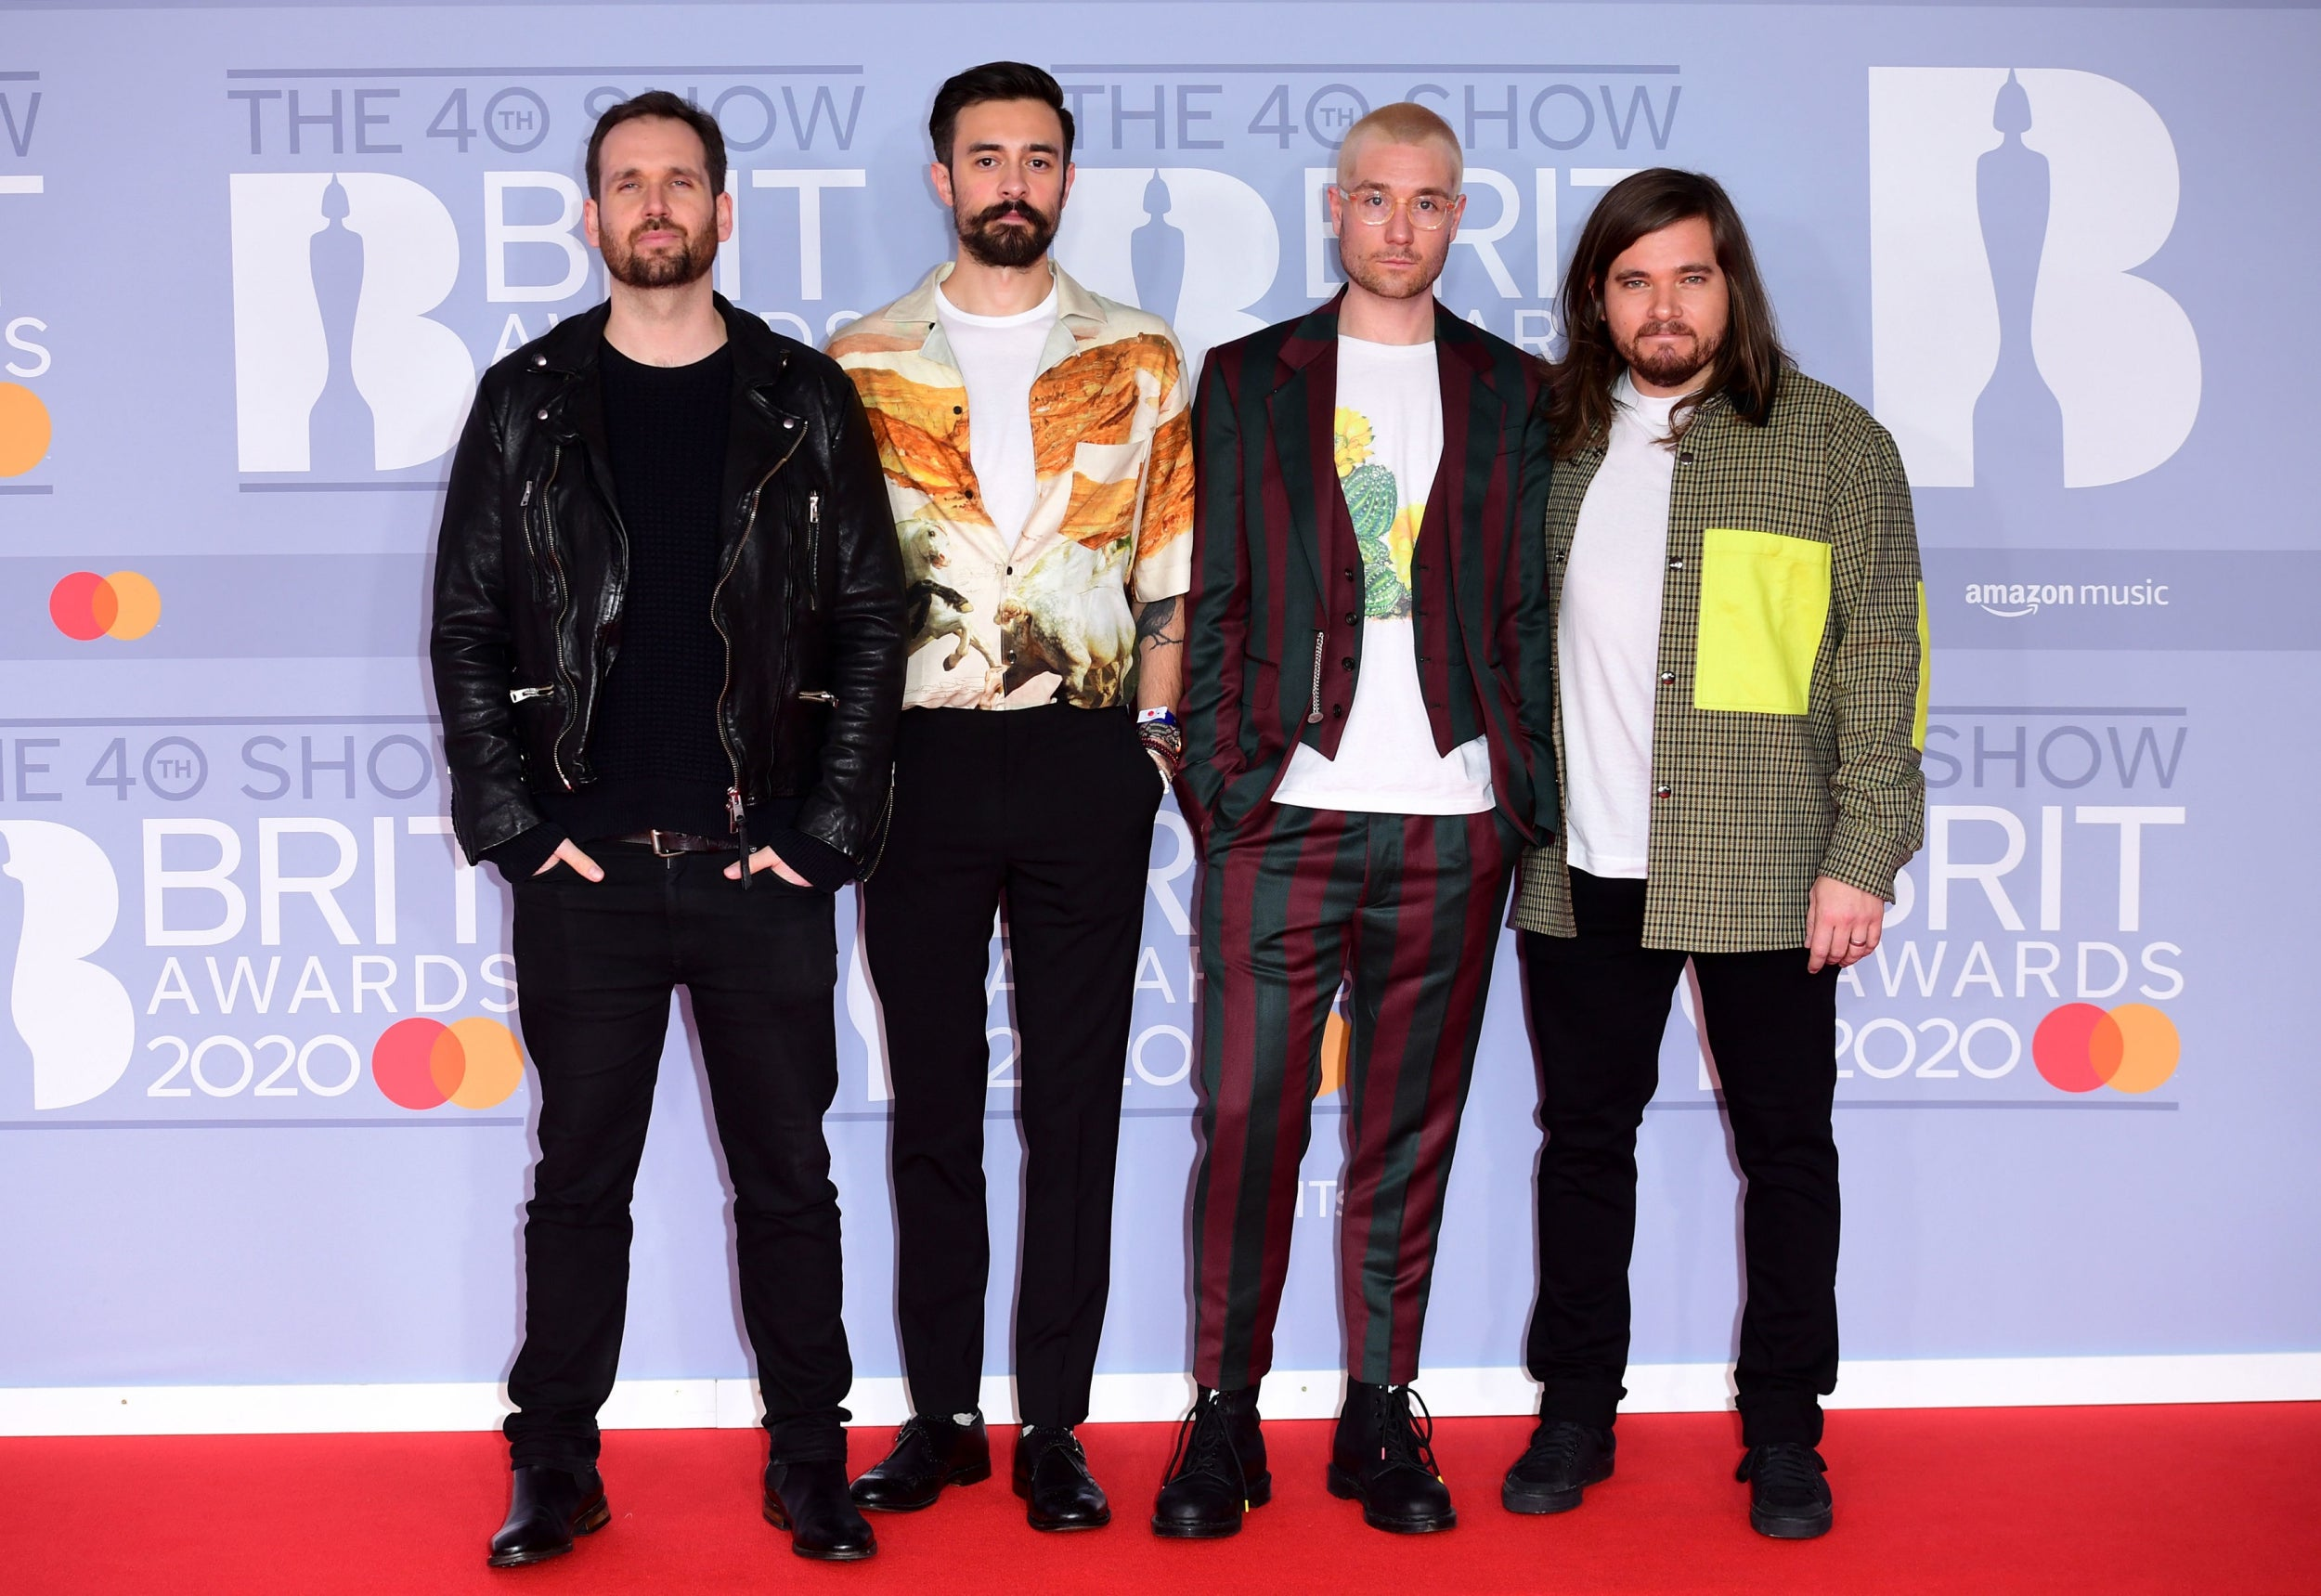 Will Farquarson, Kyle Simmons, Dan Smith and Chris Wood of Bastille